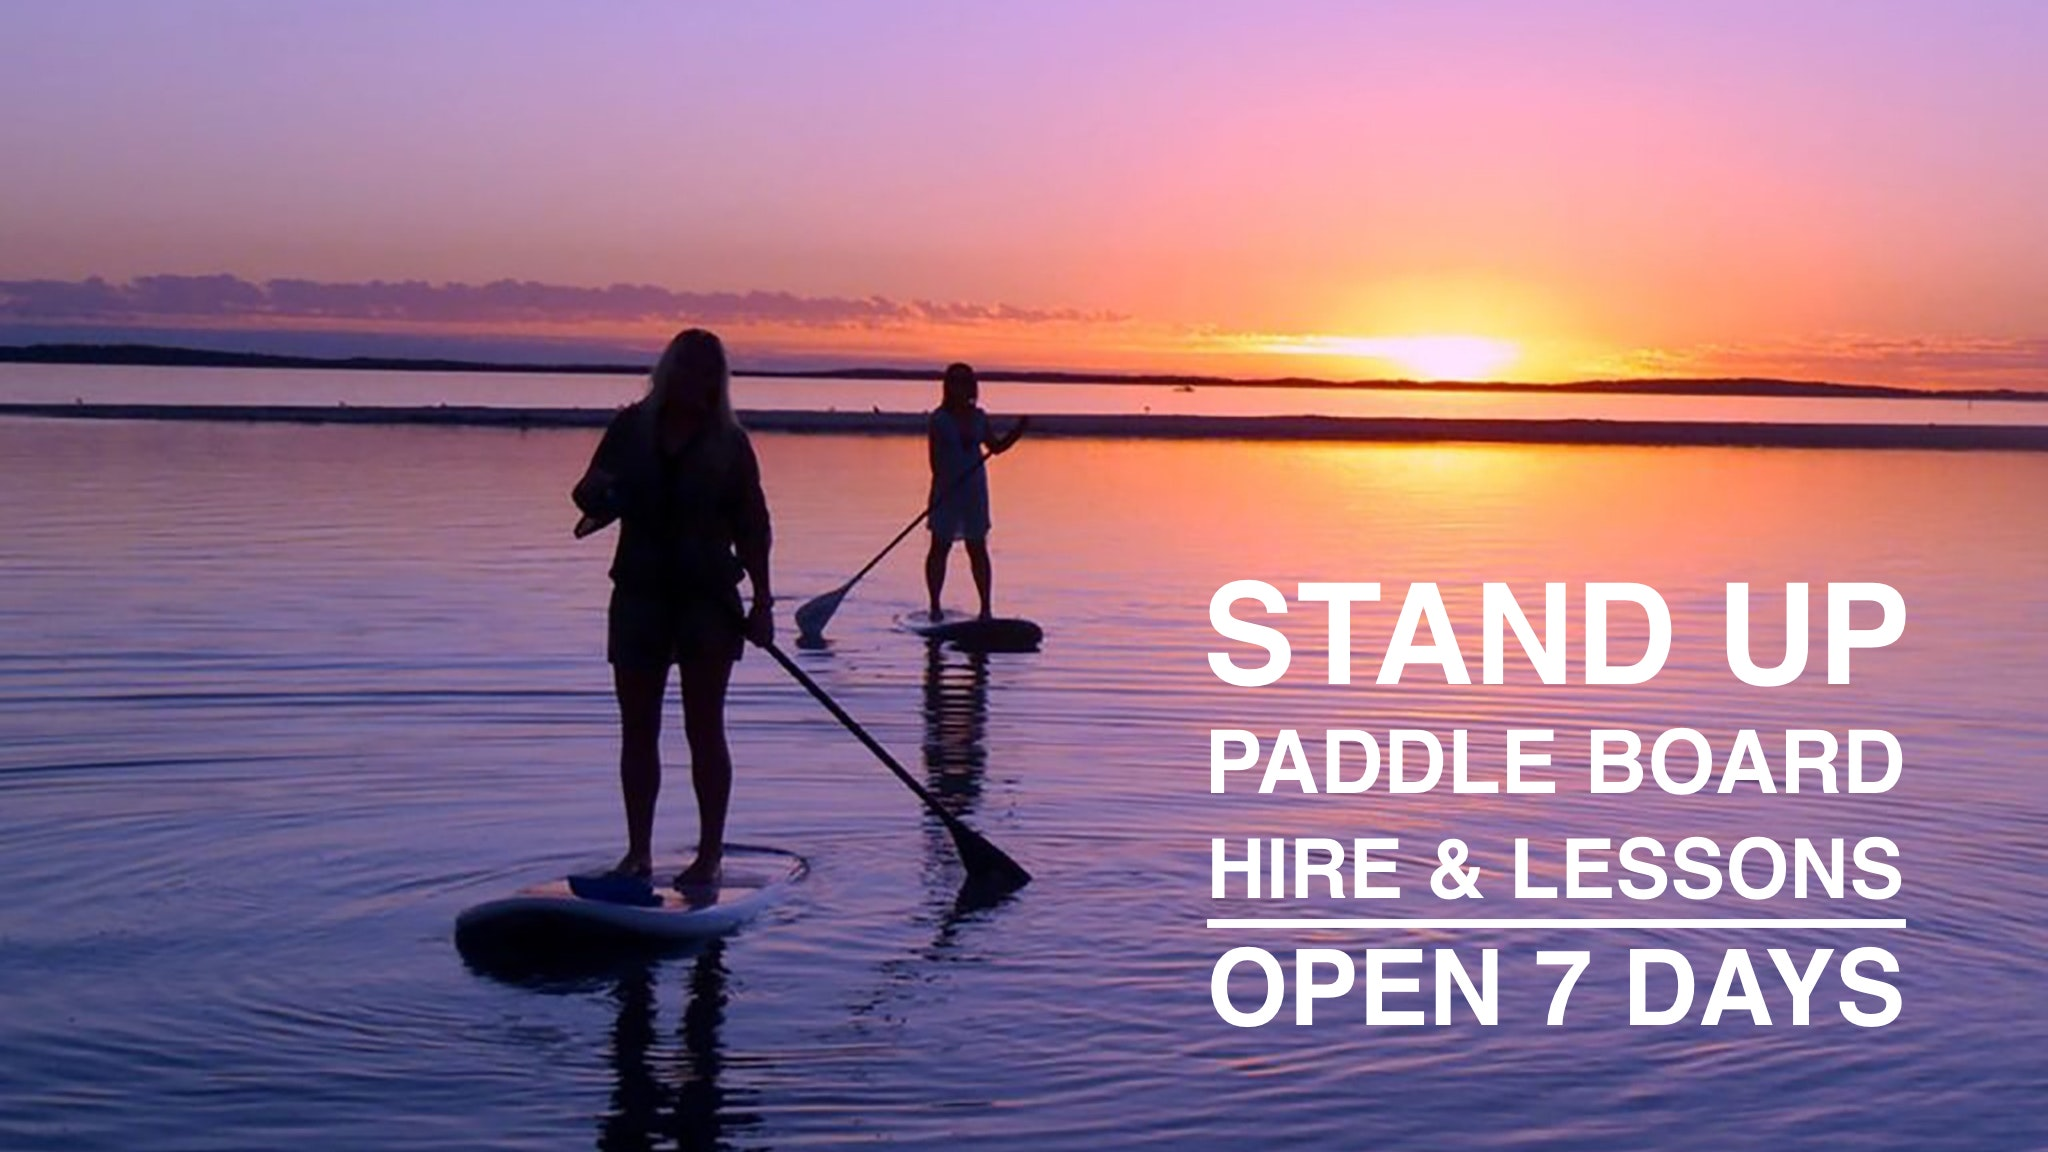 STAND UP PADDLE BOARD IMAGE - WITH TEXT.jpeg